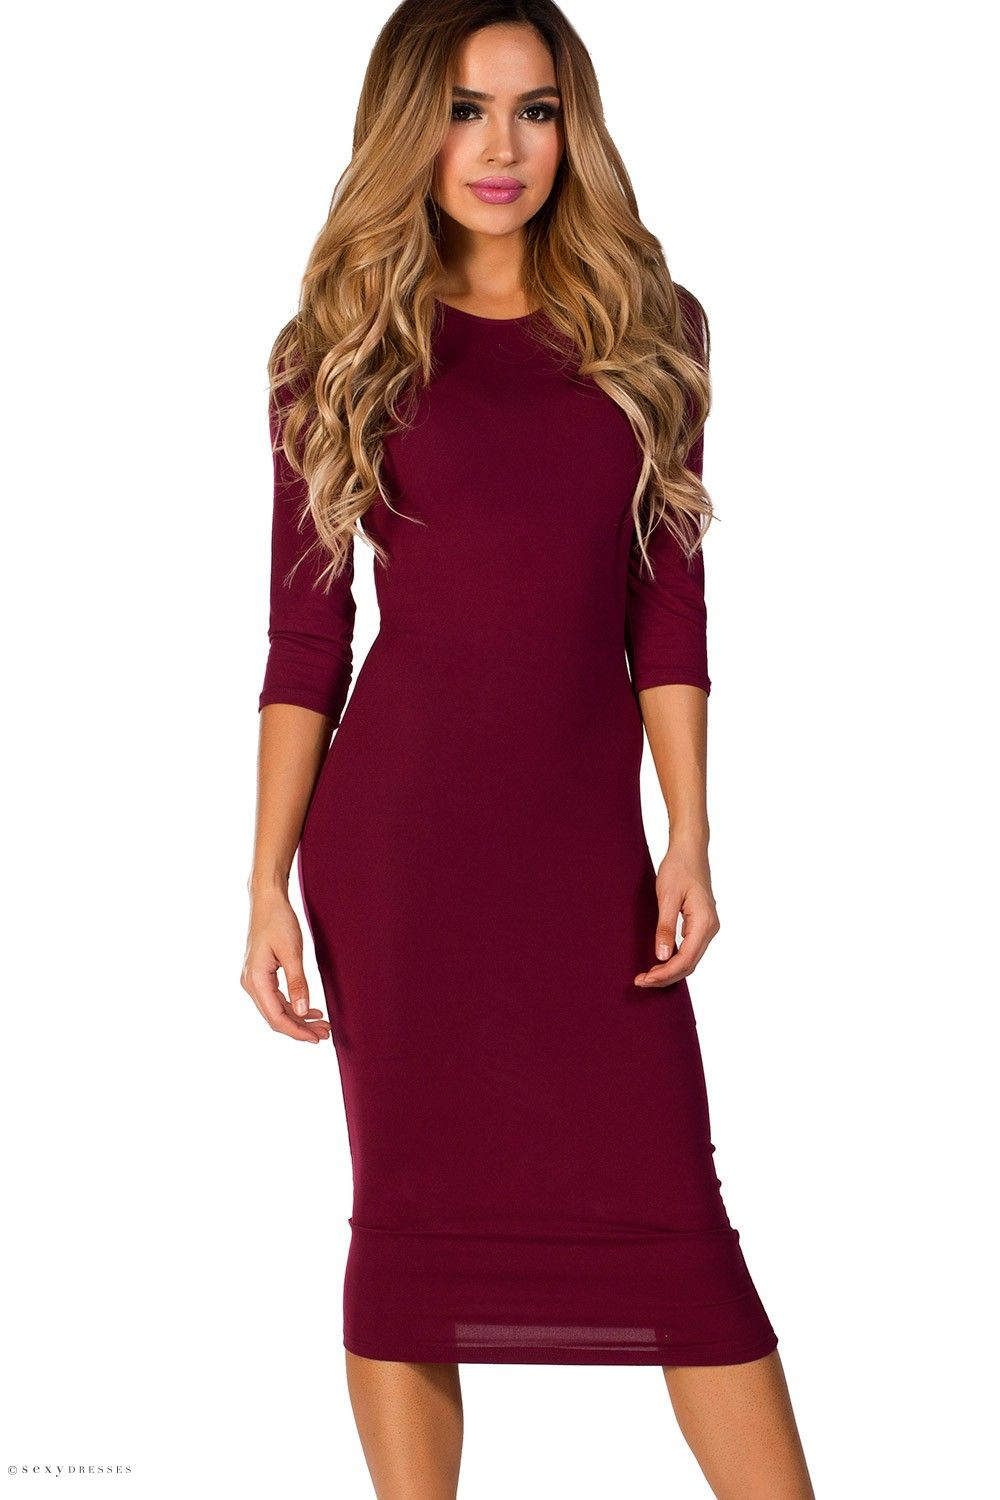 b72c08284c94 3/4 sleeve bodycon midi dress is a sexy fitted dress that feels soft and  stretchy like a light t shirt! A cute casual dress with sleeves perfect to  wear on ...